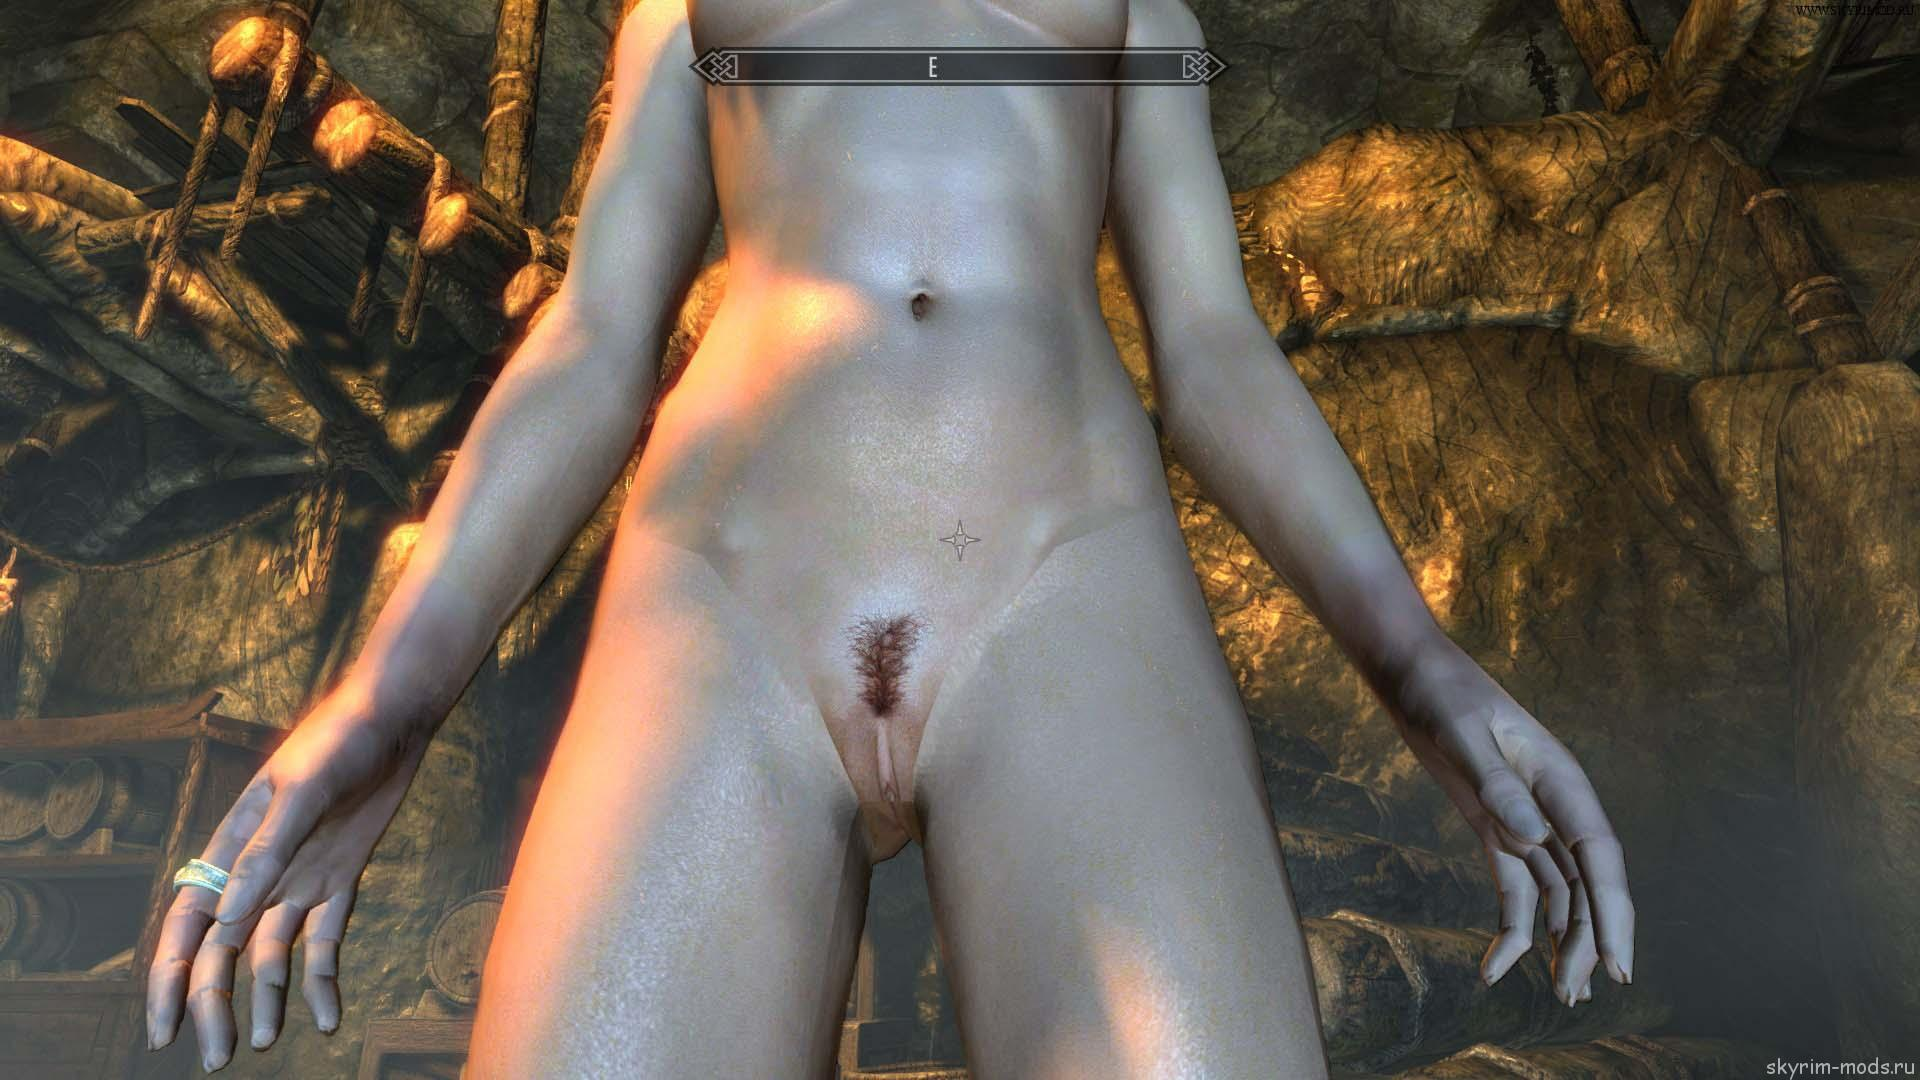 Skyrim nude female download hentai tube